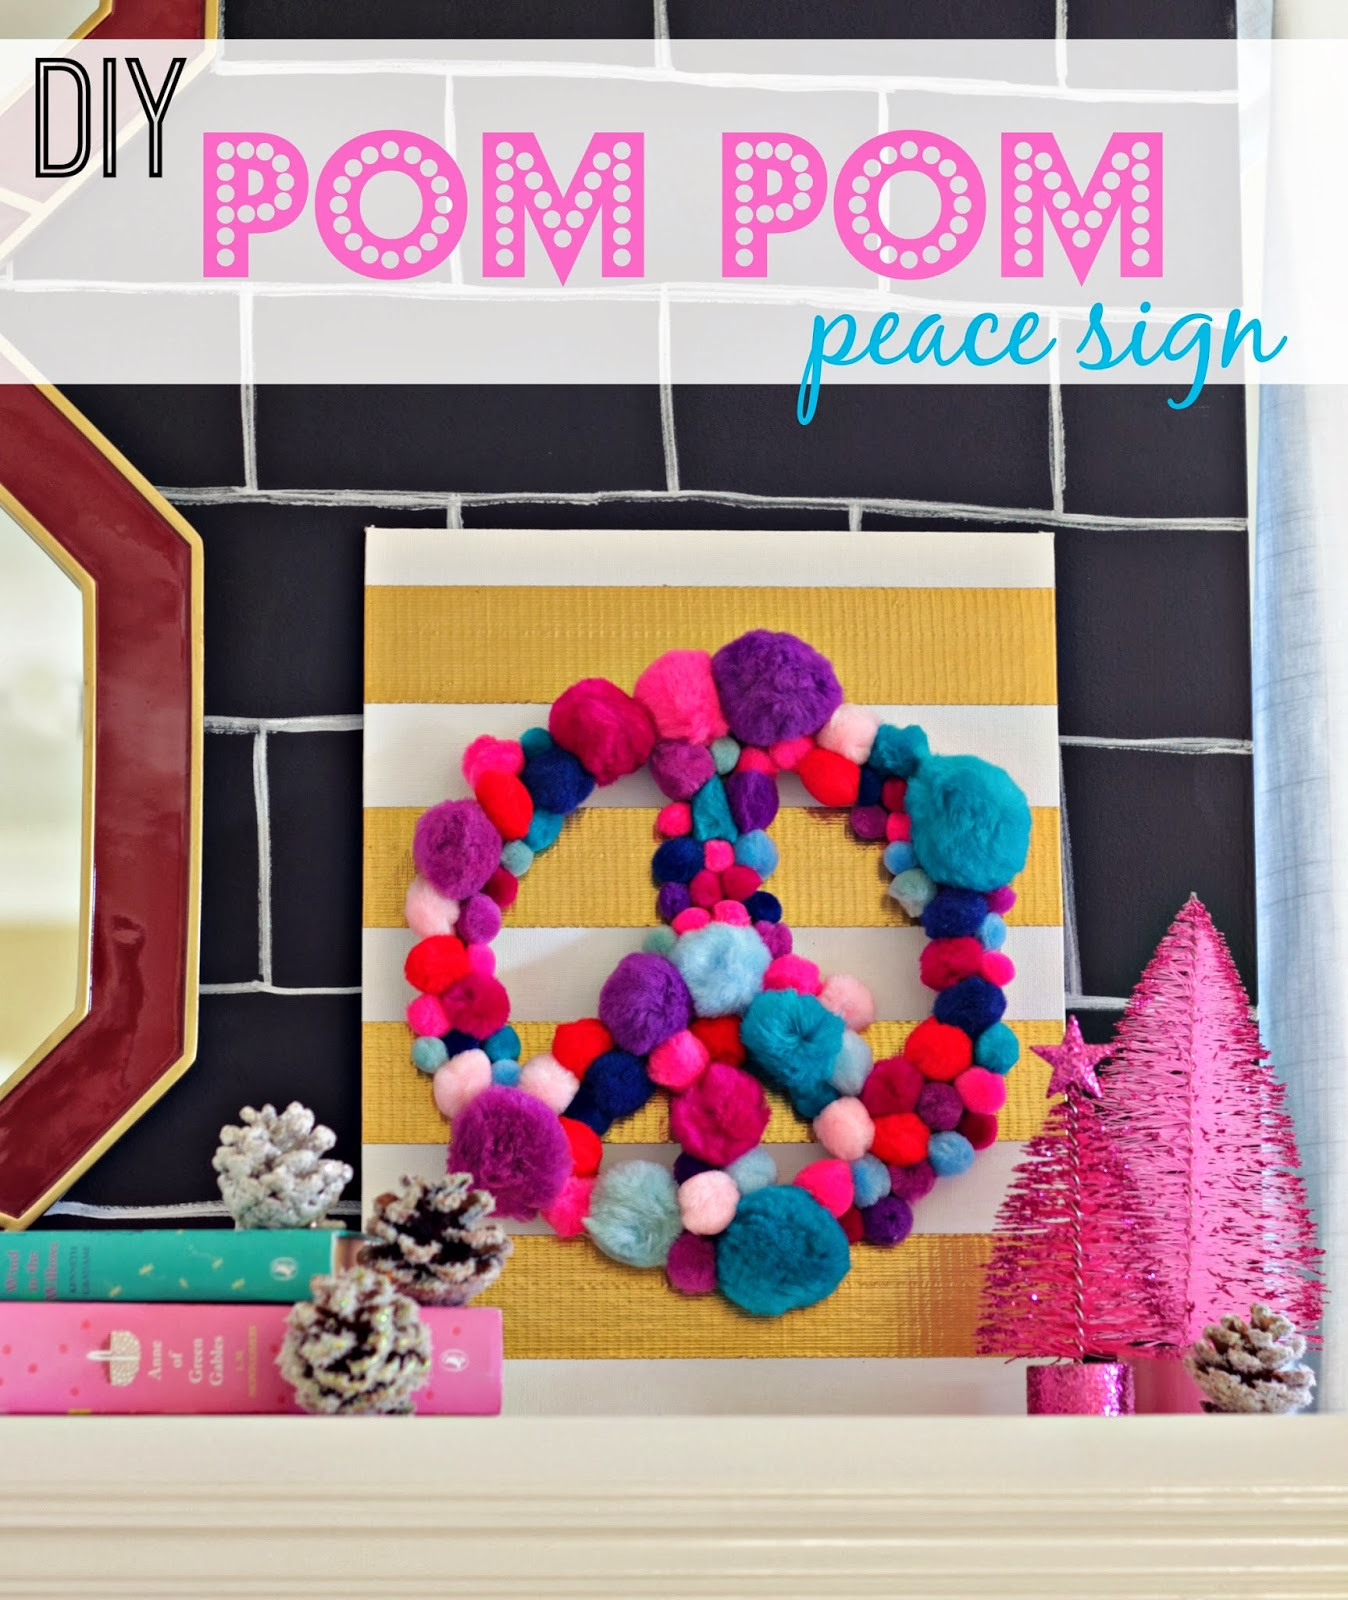 Peace Sign Bedroom Pom Pom Crafts Our Fifth House